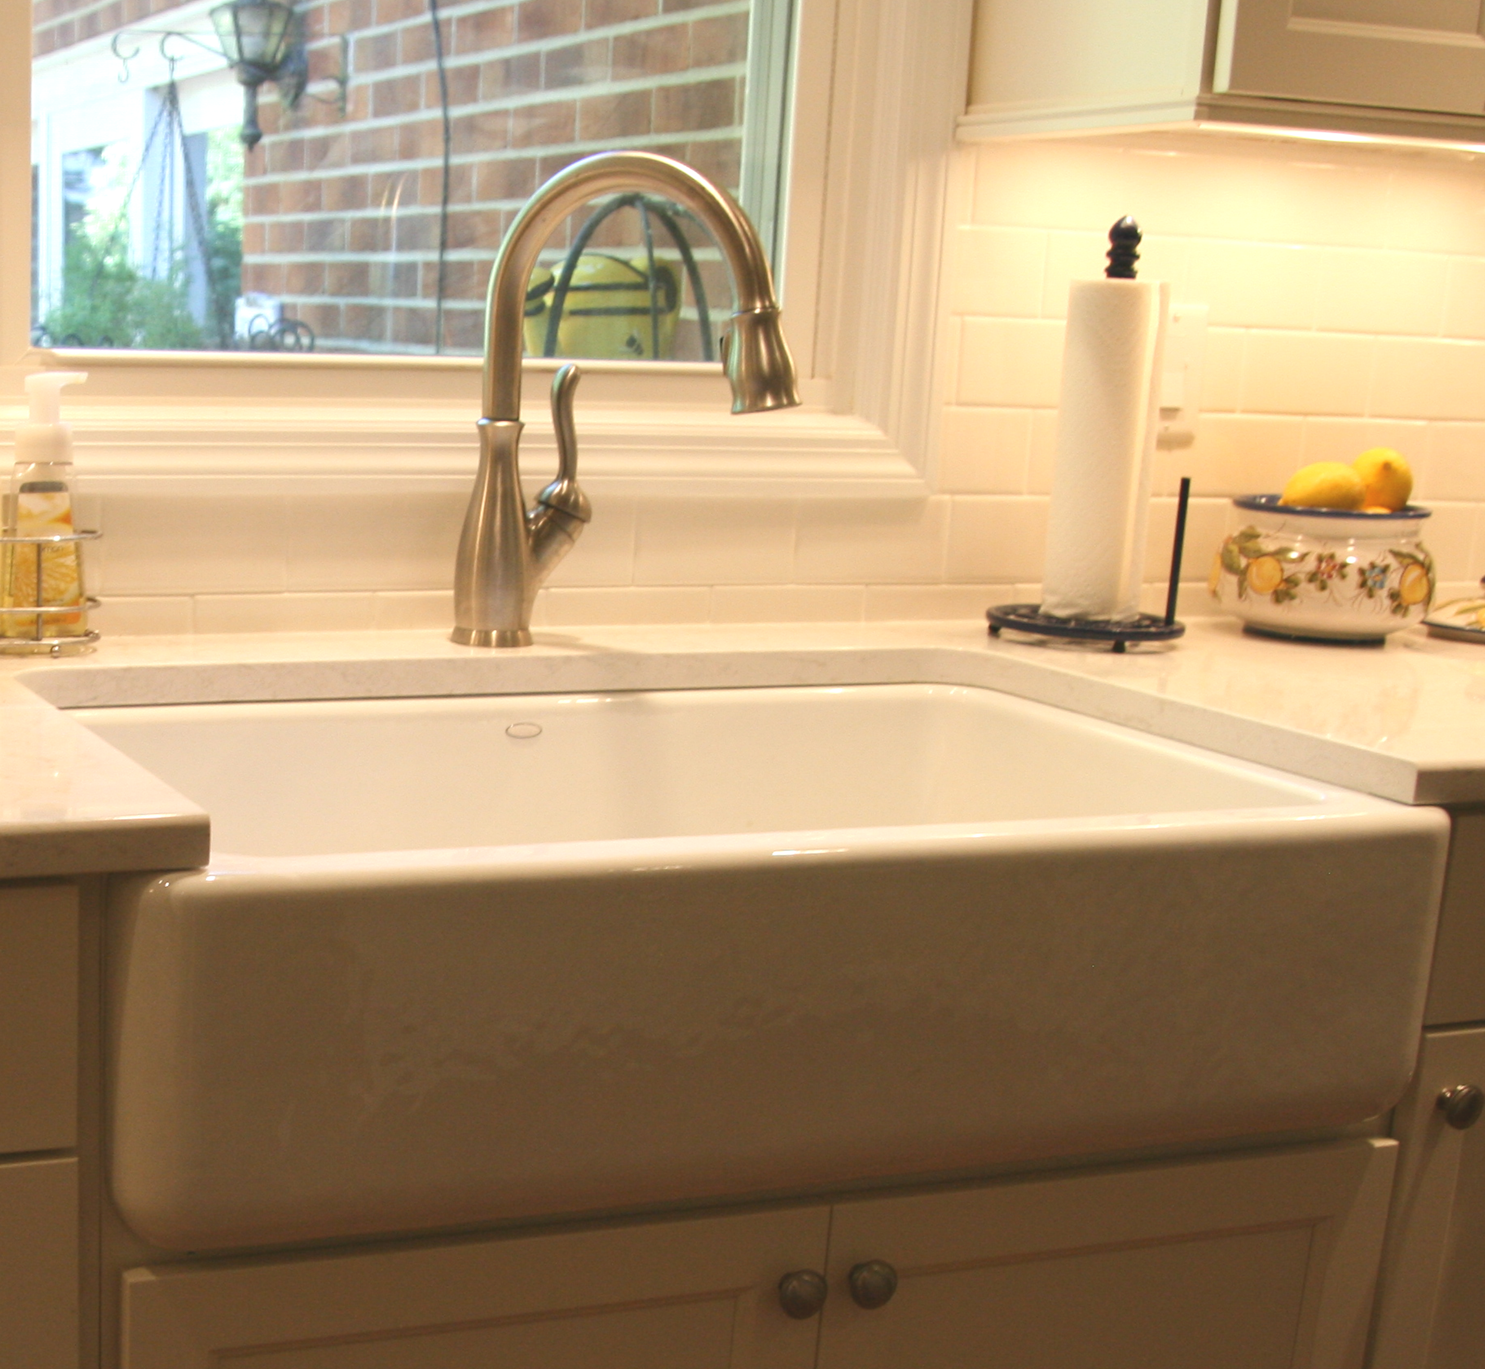 and the Kitchen Sink! DreamMaker Bath & Kitchen